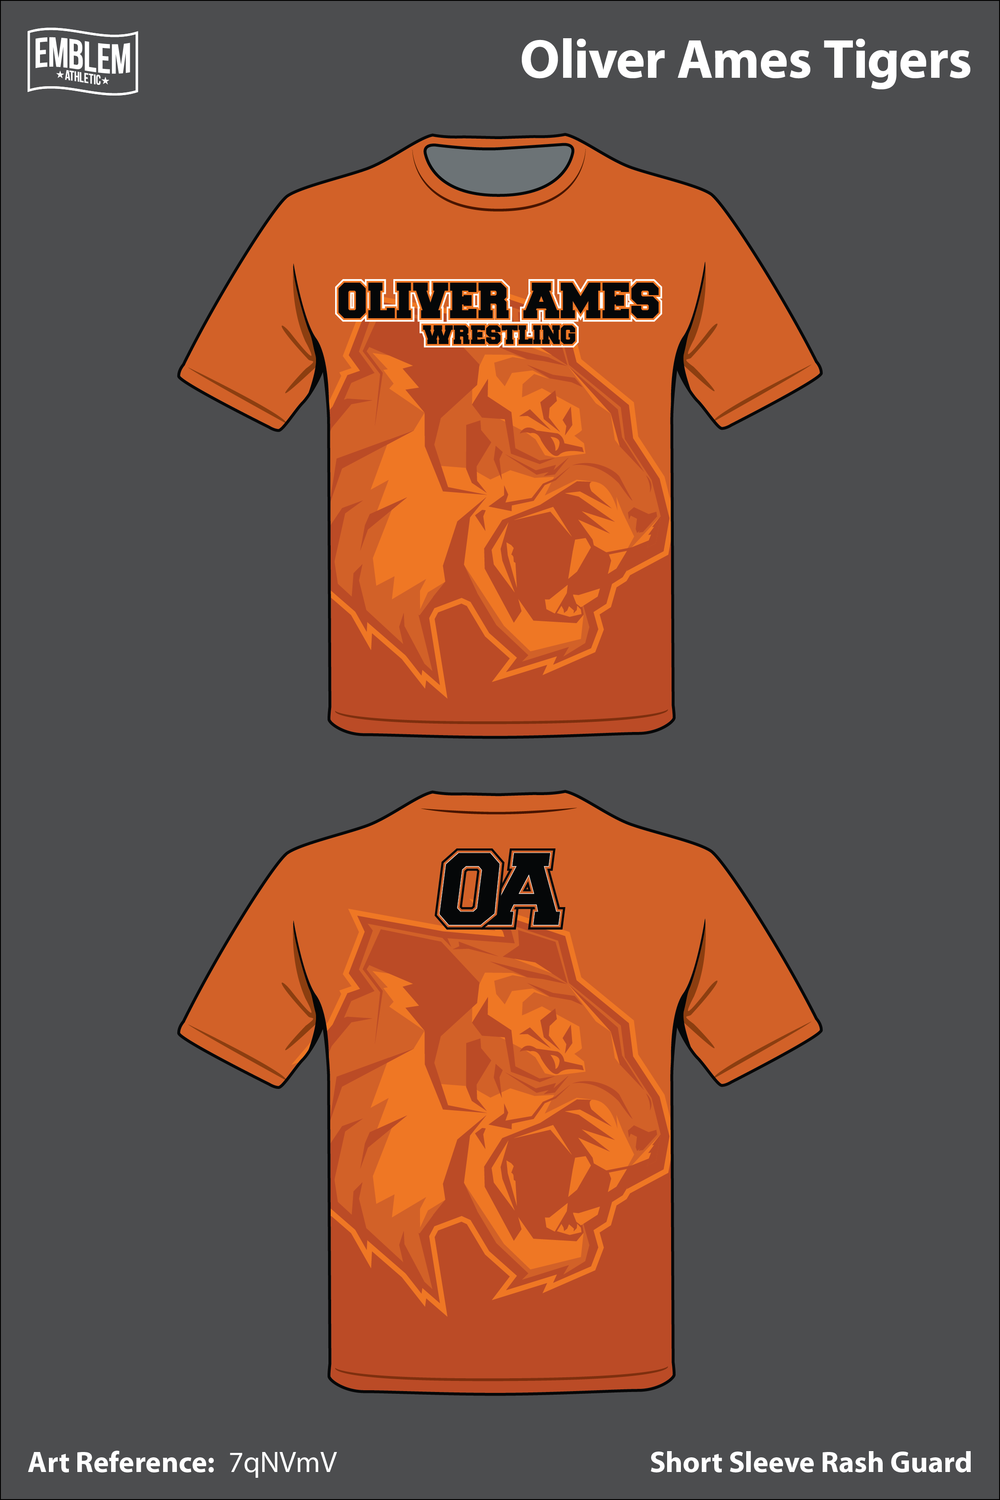 Oliver Ames  - Revisions: 5Total Sales: $0Commission: $0Click image to access store.